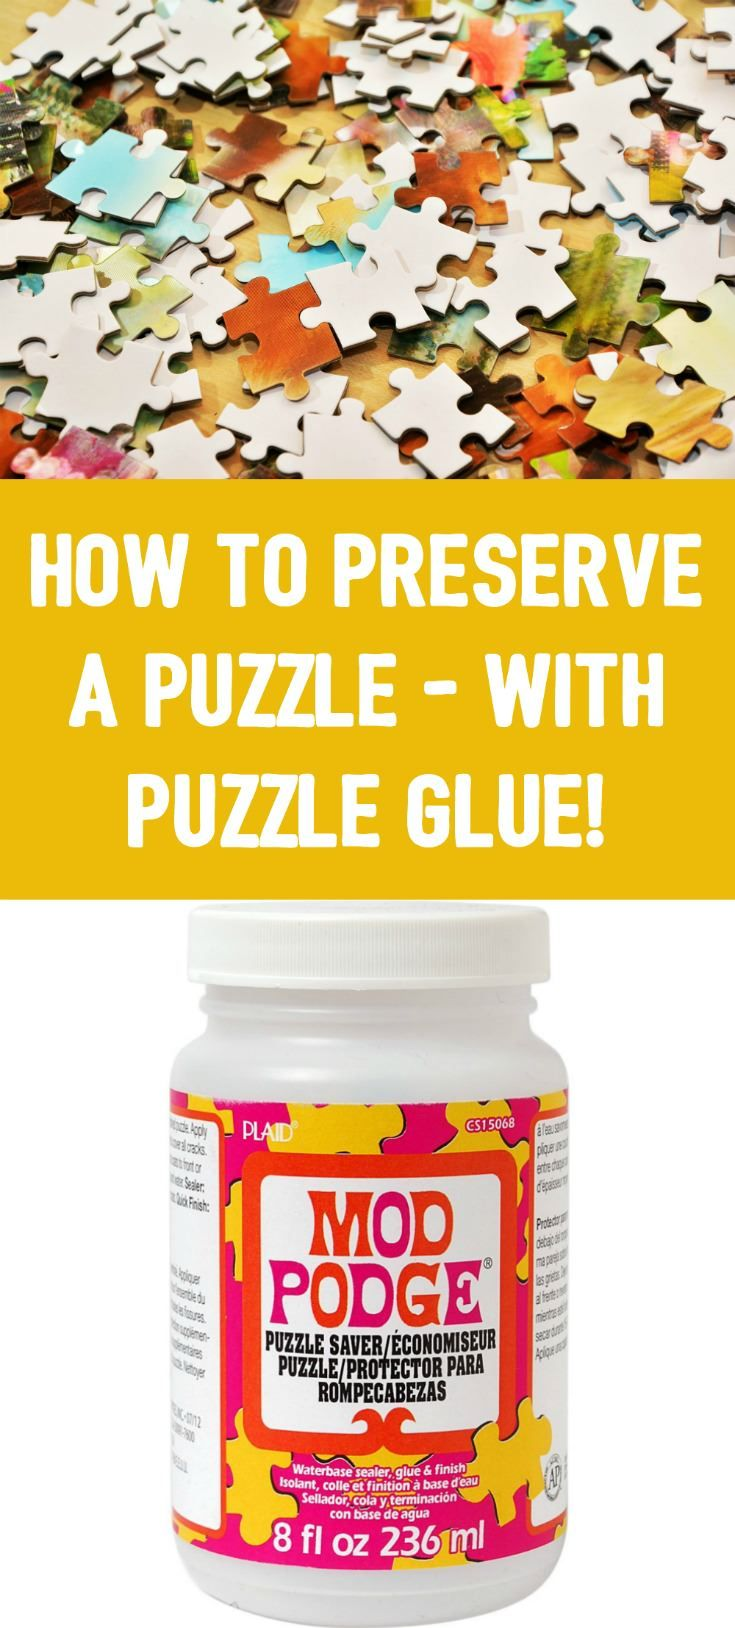 Learn how to preserve a puzzle with puzzle glue! My favorite is Mod Podge Puzzle Saver. I'll show you my process for gluing your puzzles permanently. via @modpodgerocks